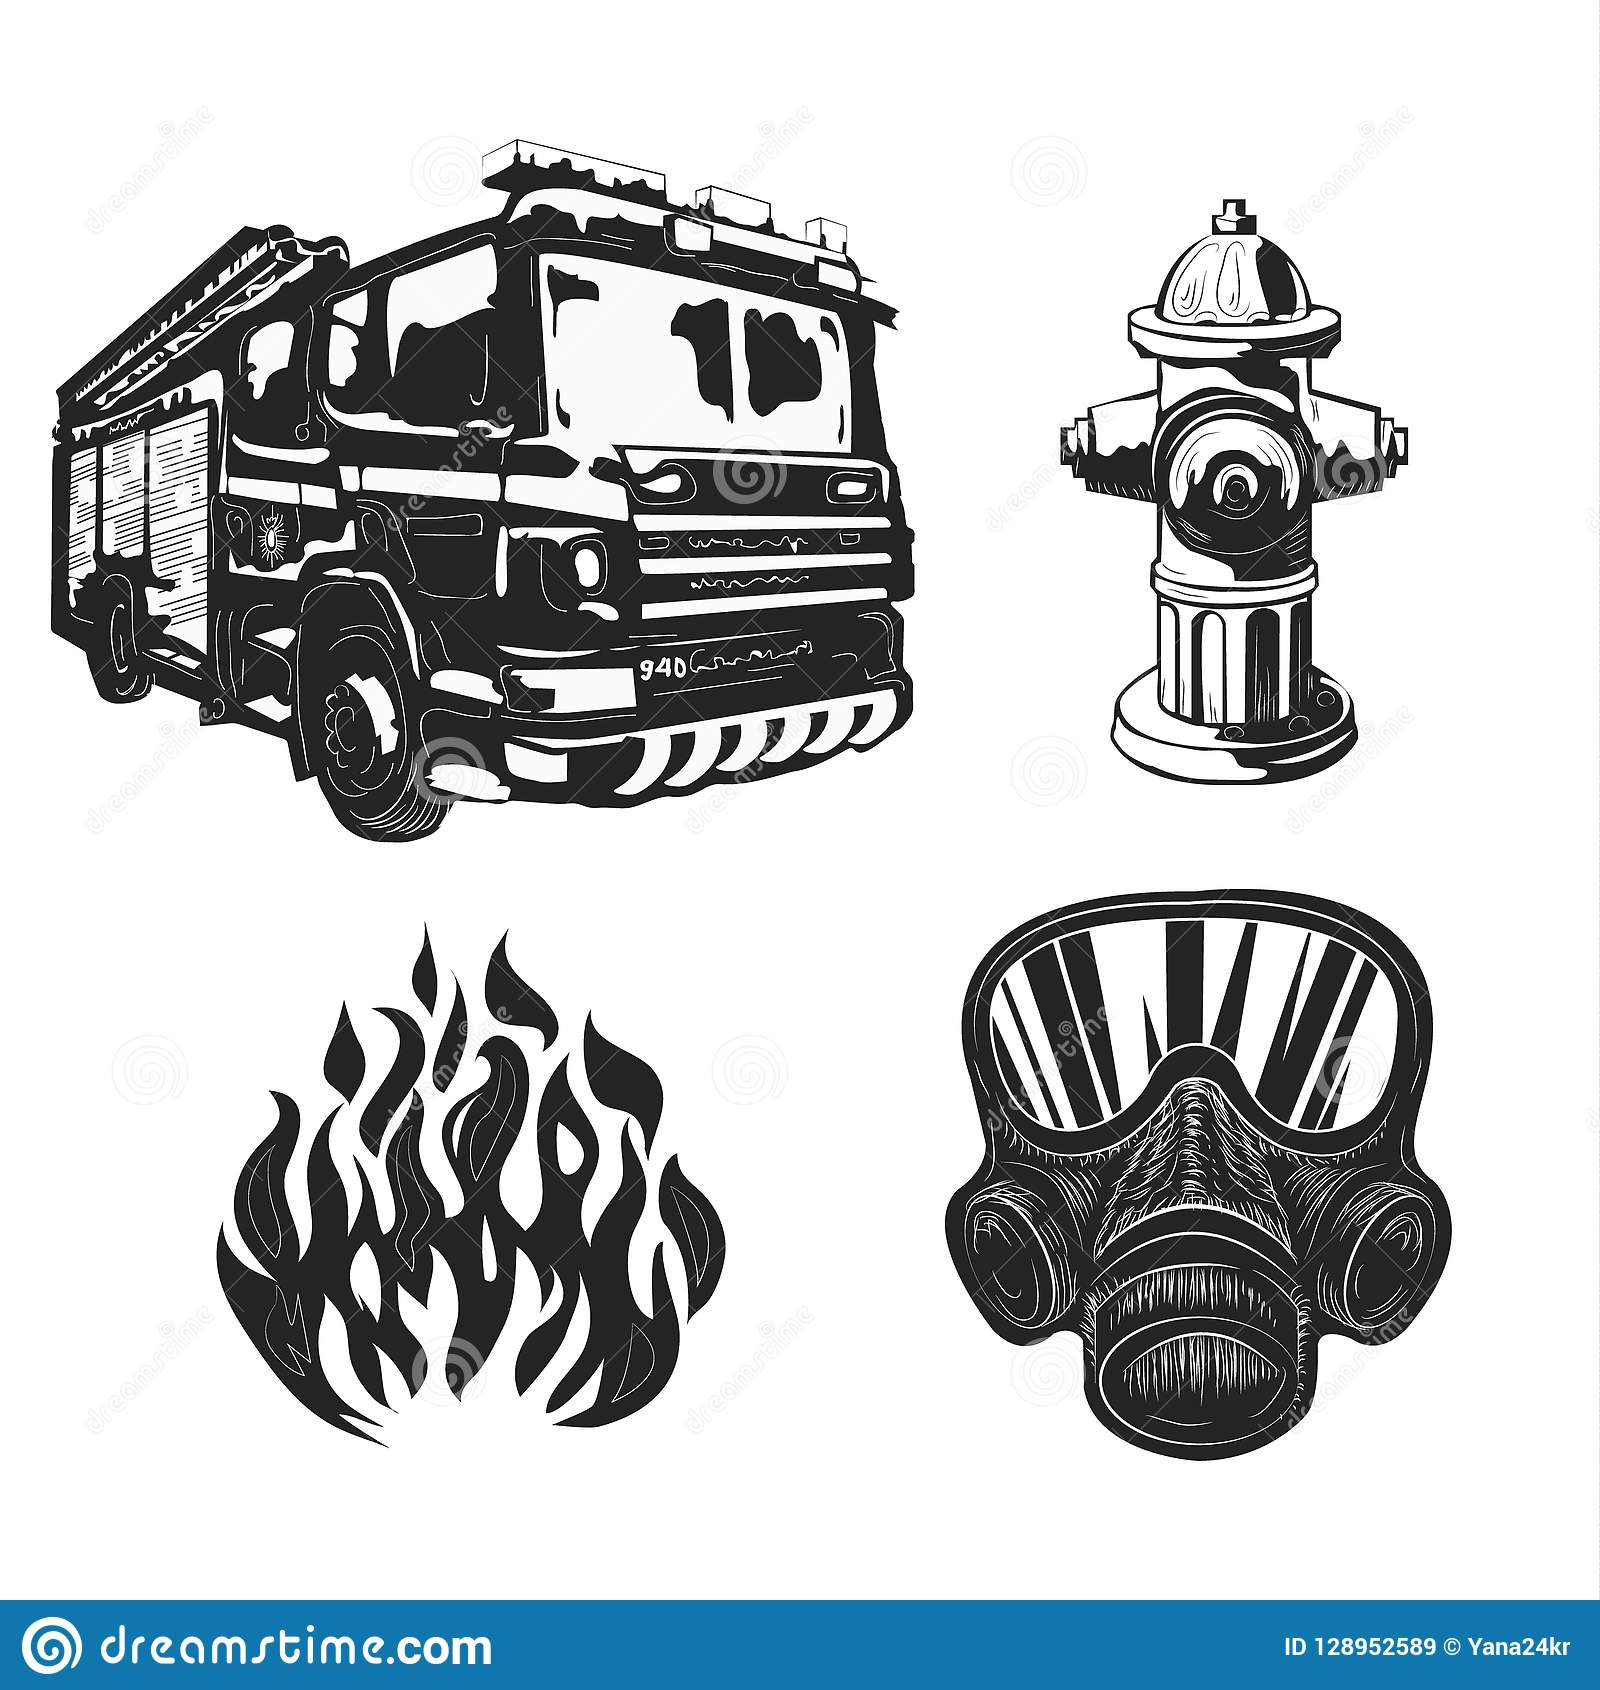 Graphic drawings Vintage poster with firemen